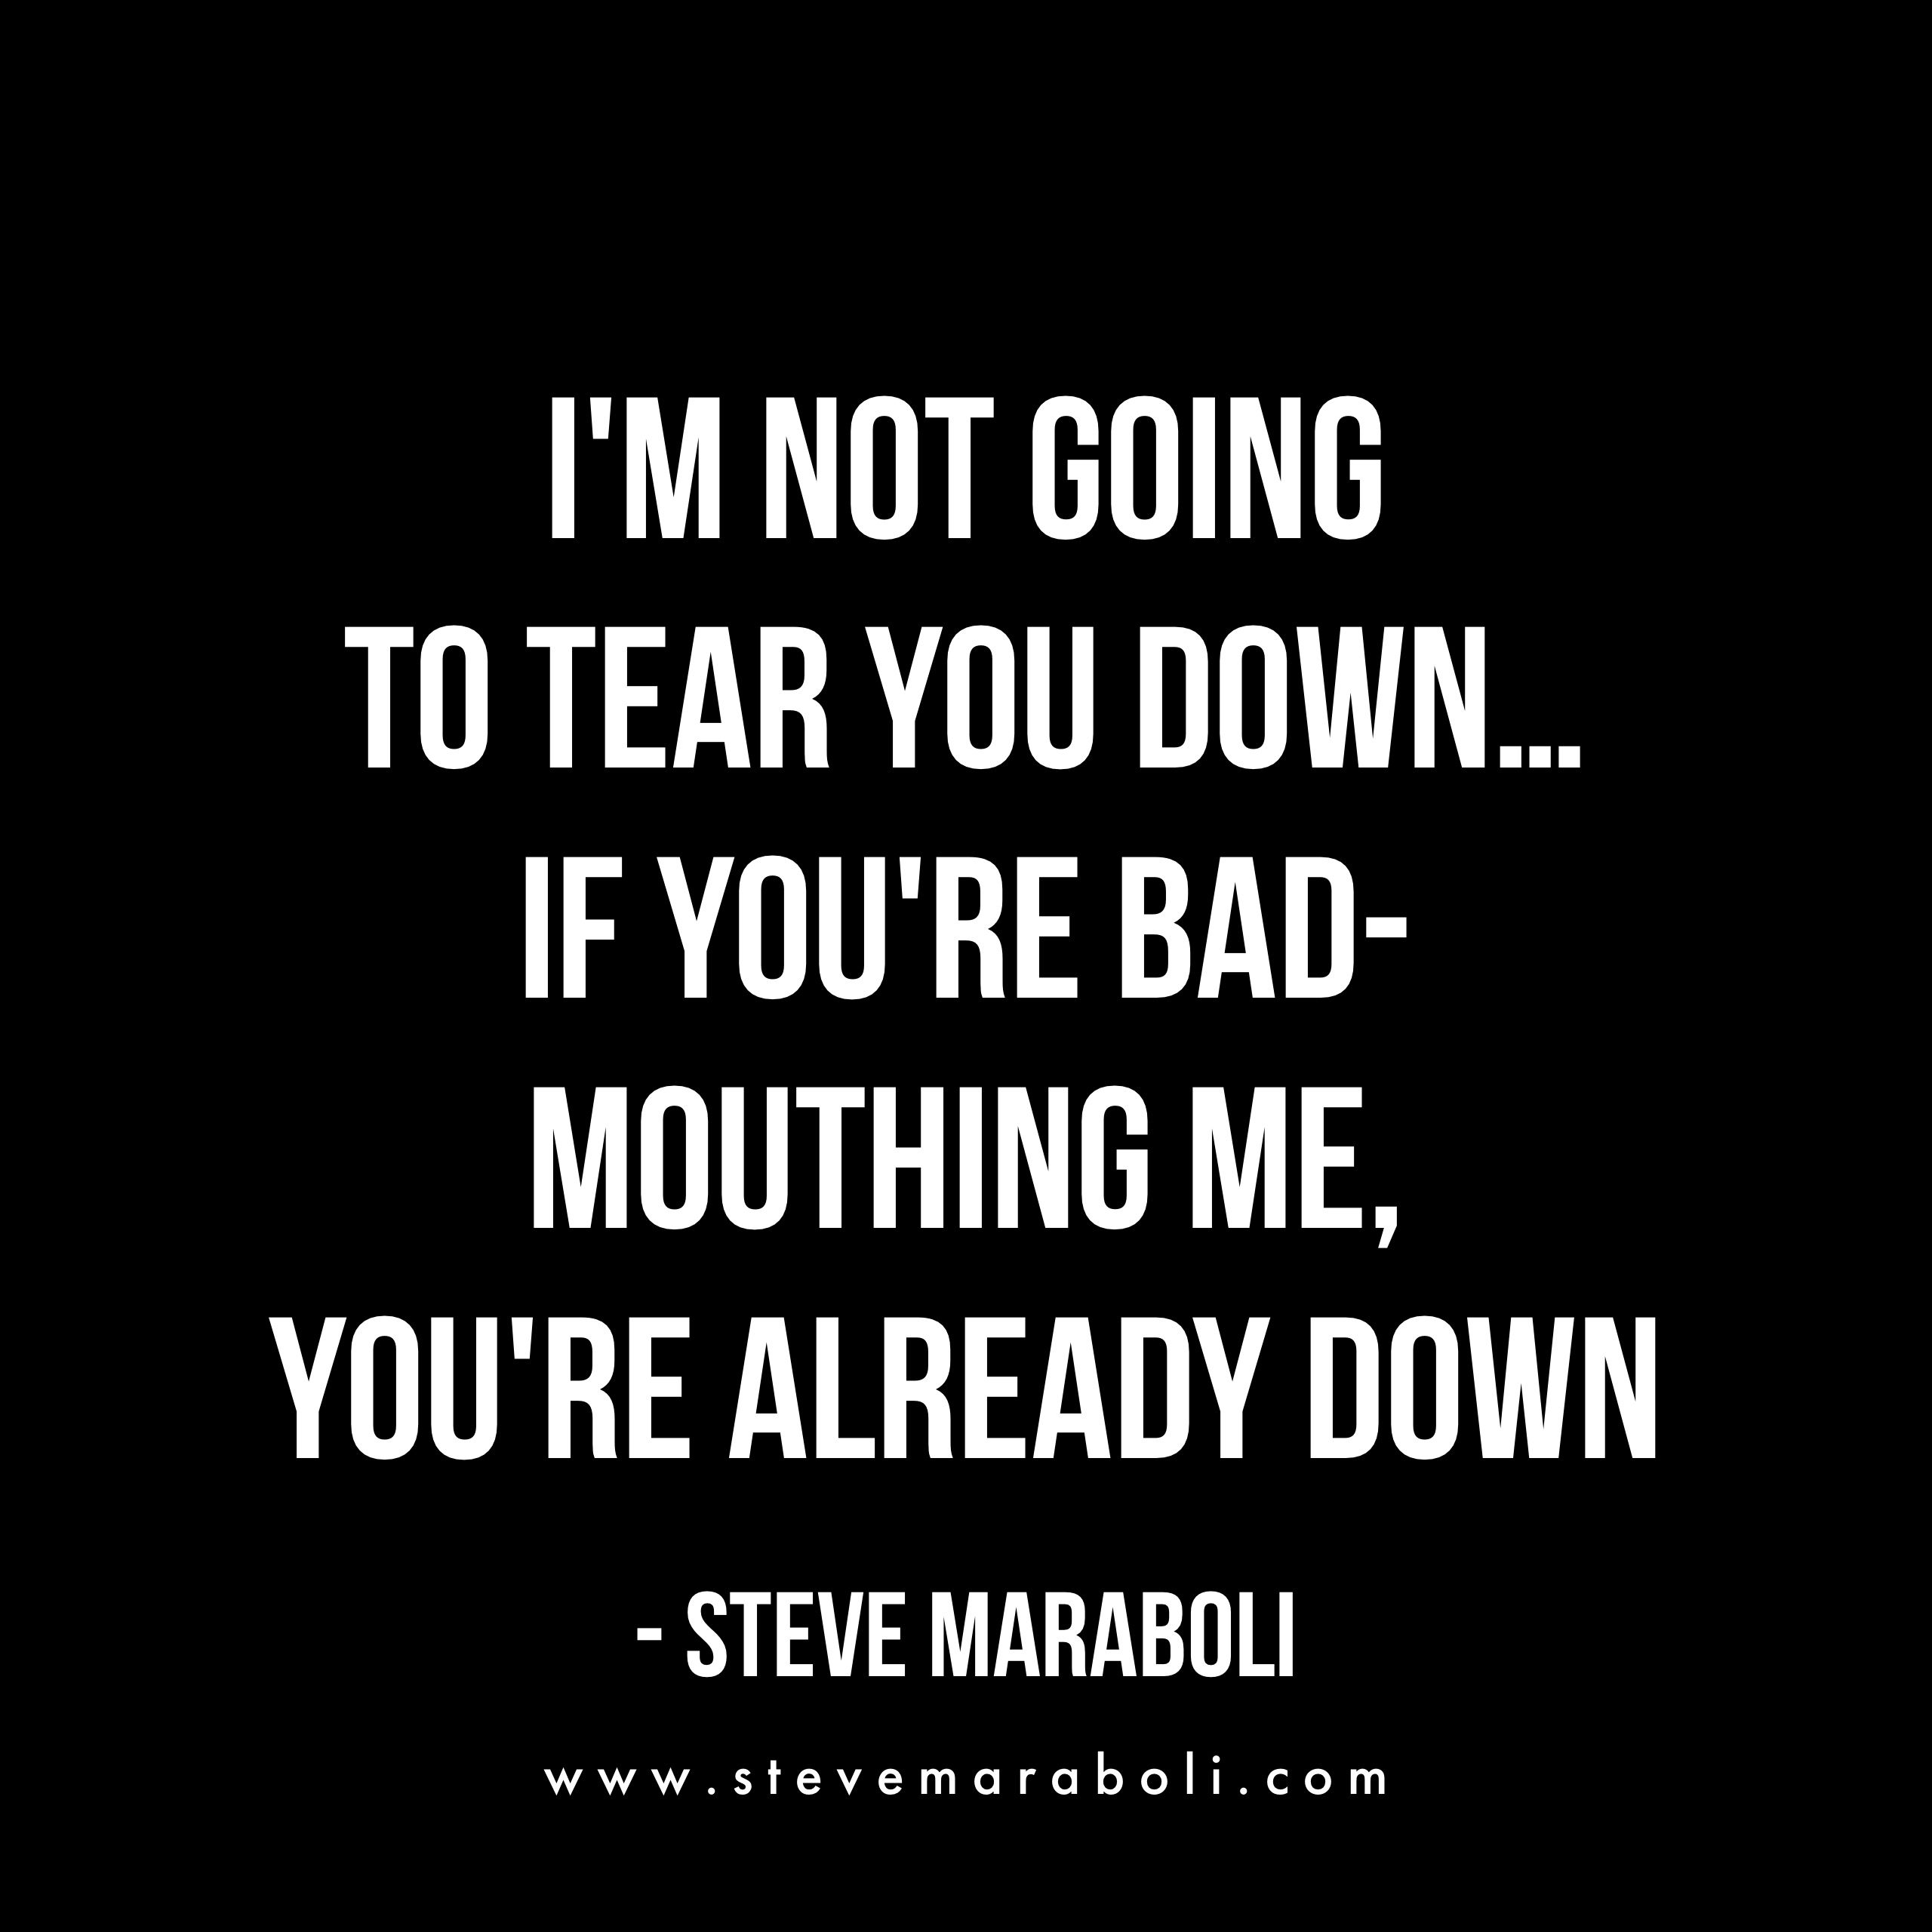 I M Not Going To Tear You Down If You Re Bad Mouthing Me You Re Already Down Steve Maraboli Gossip Quotes Mouth Quote Words